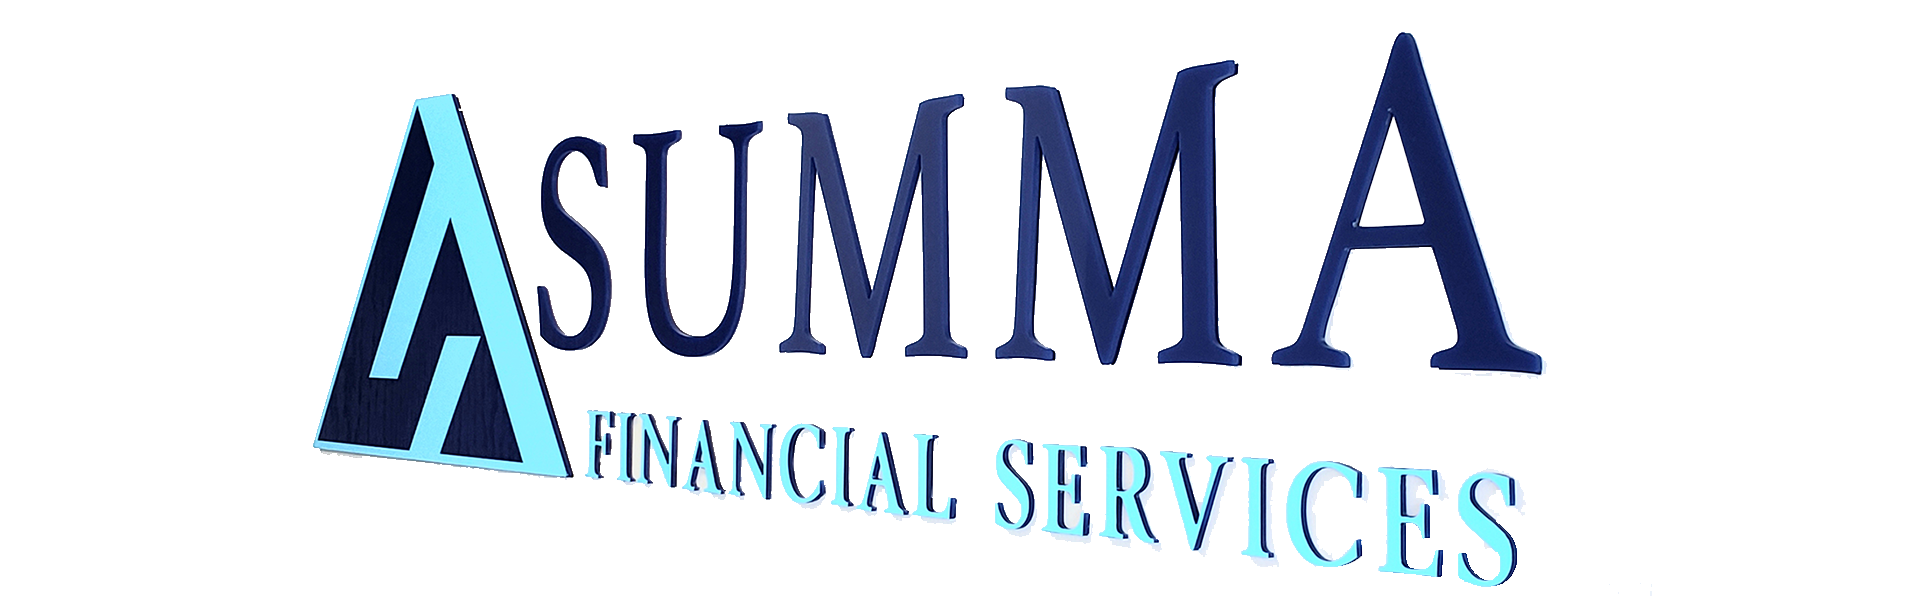 summa-financial-services